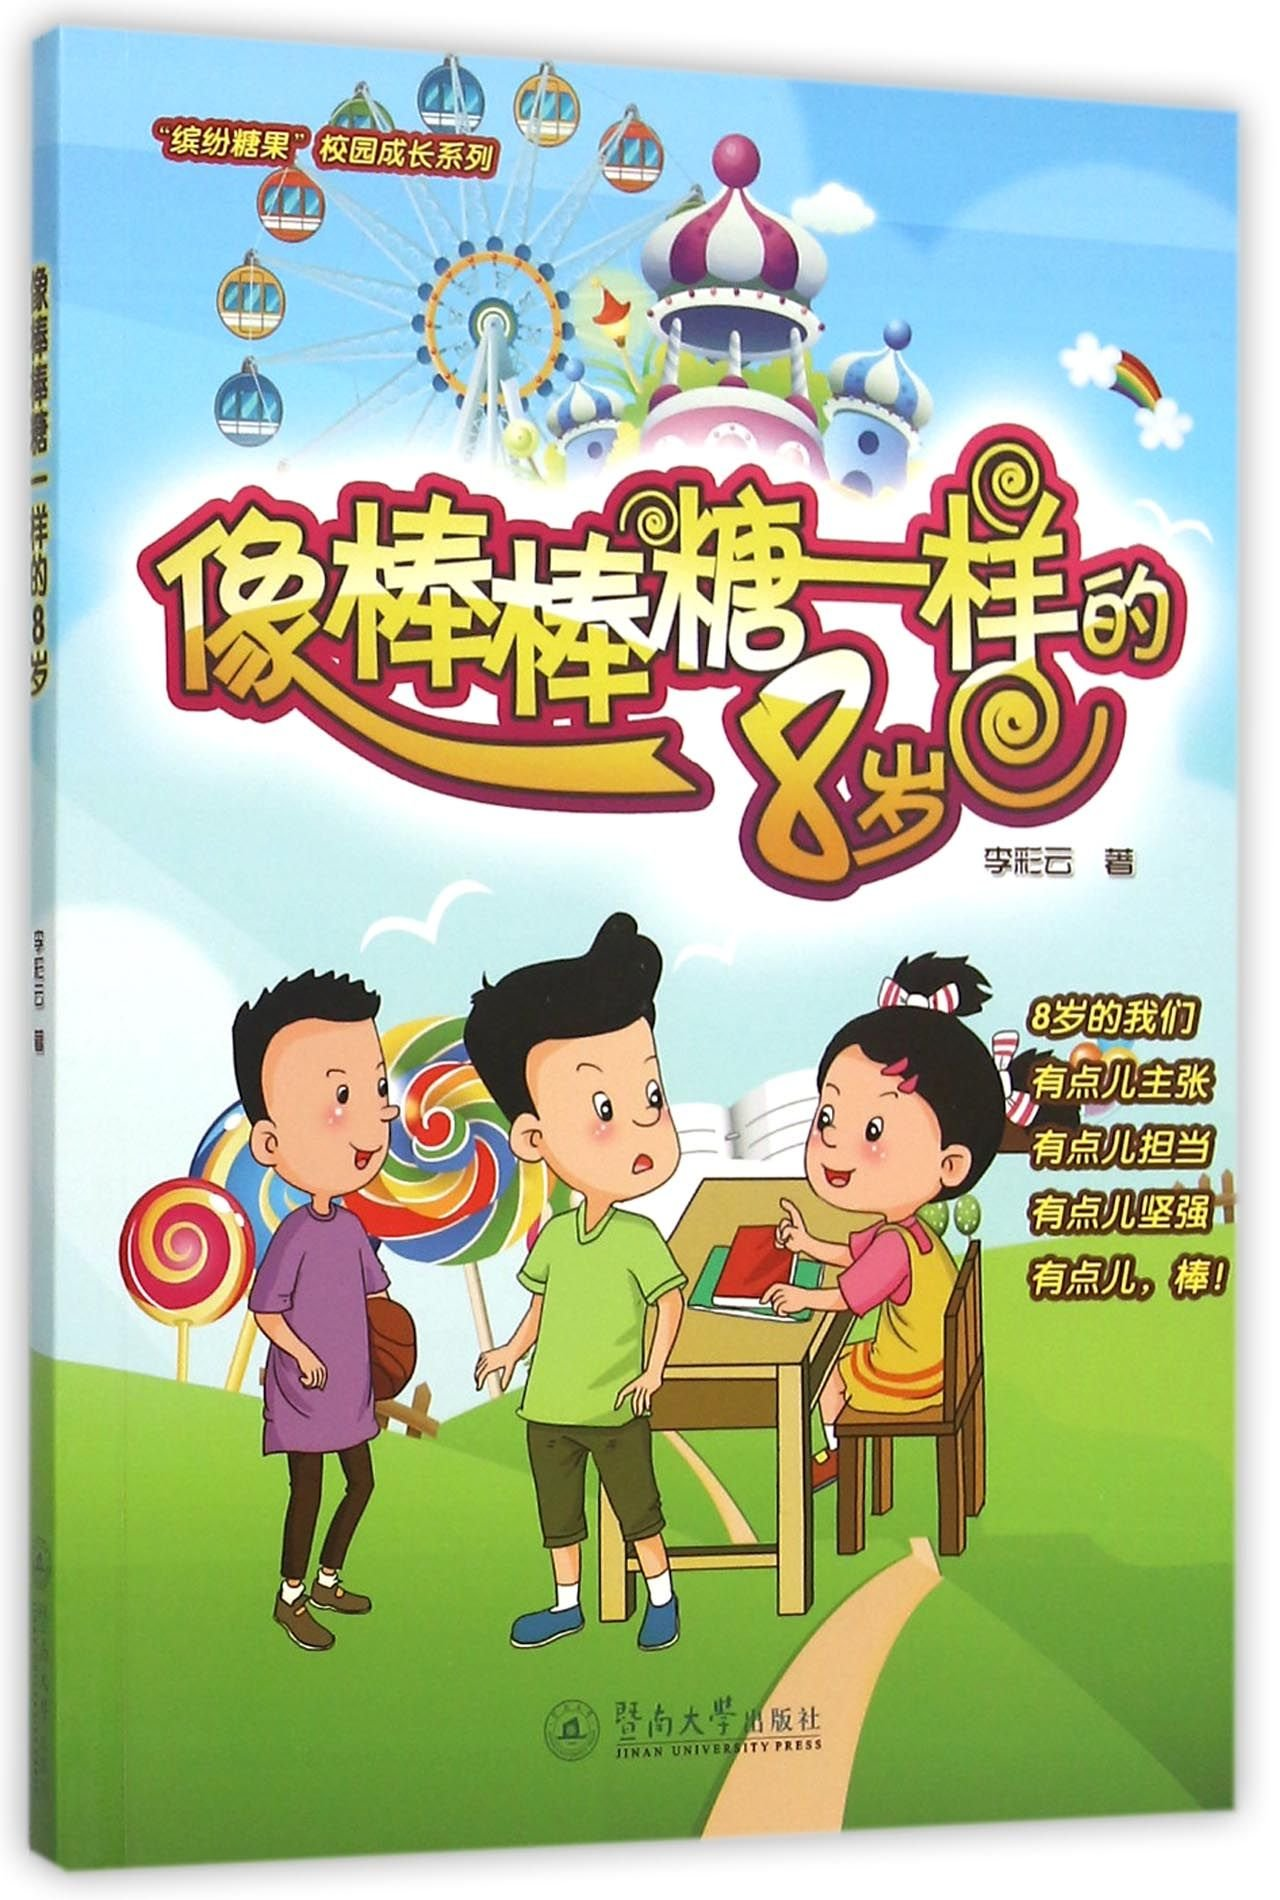 Download The Eight of Lollipop (Chinese Edition) PDF